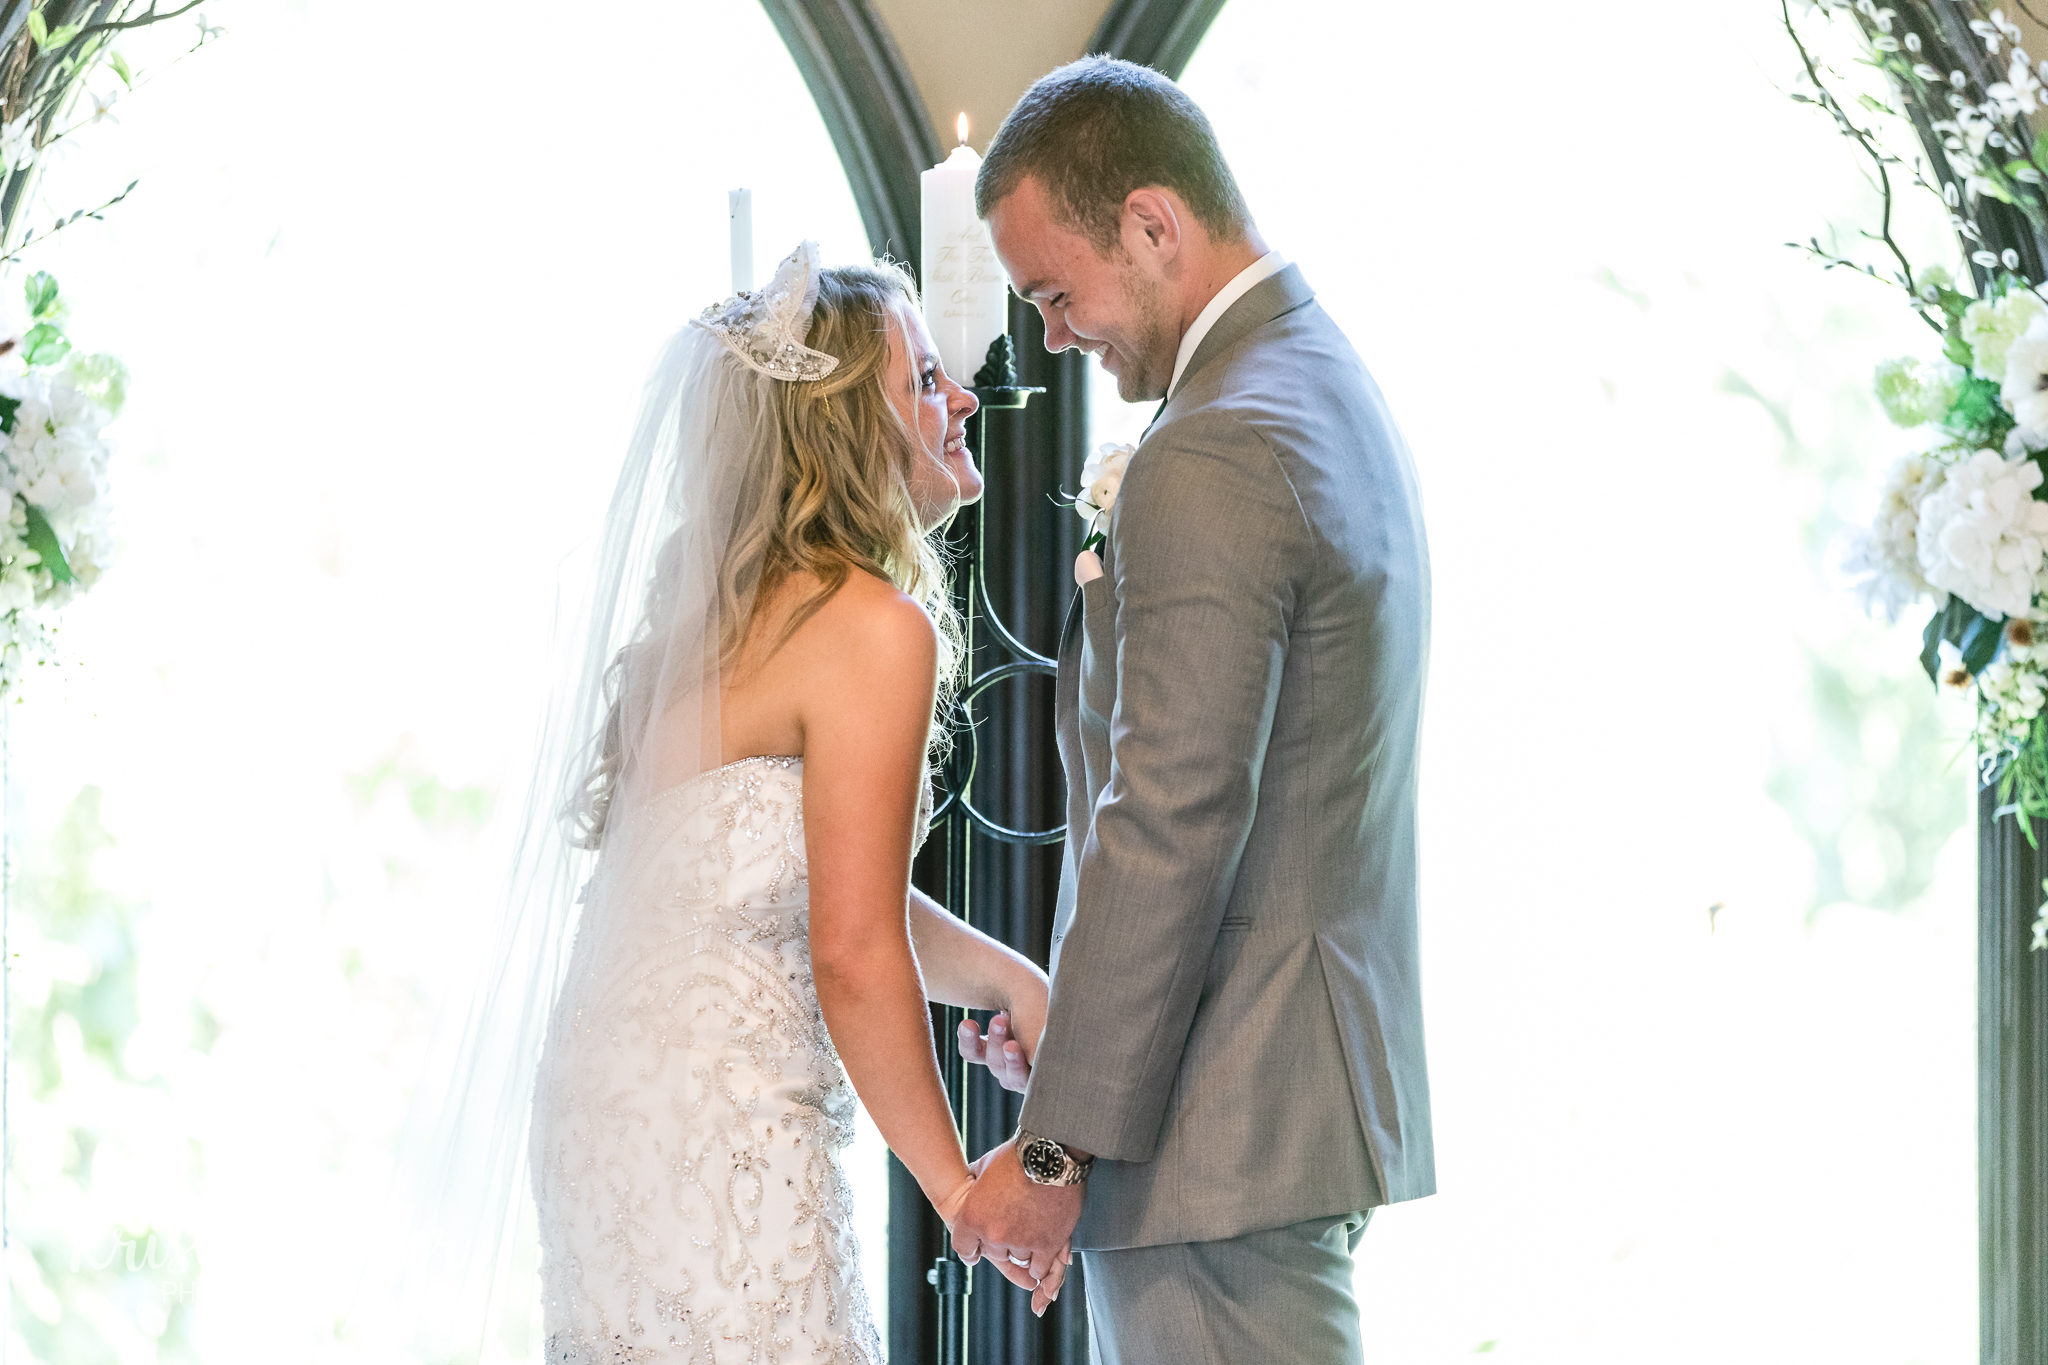 BarretWeddingSM-177.jpg